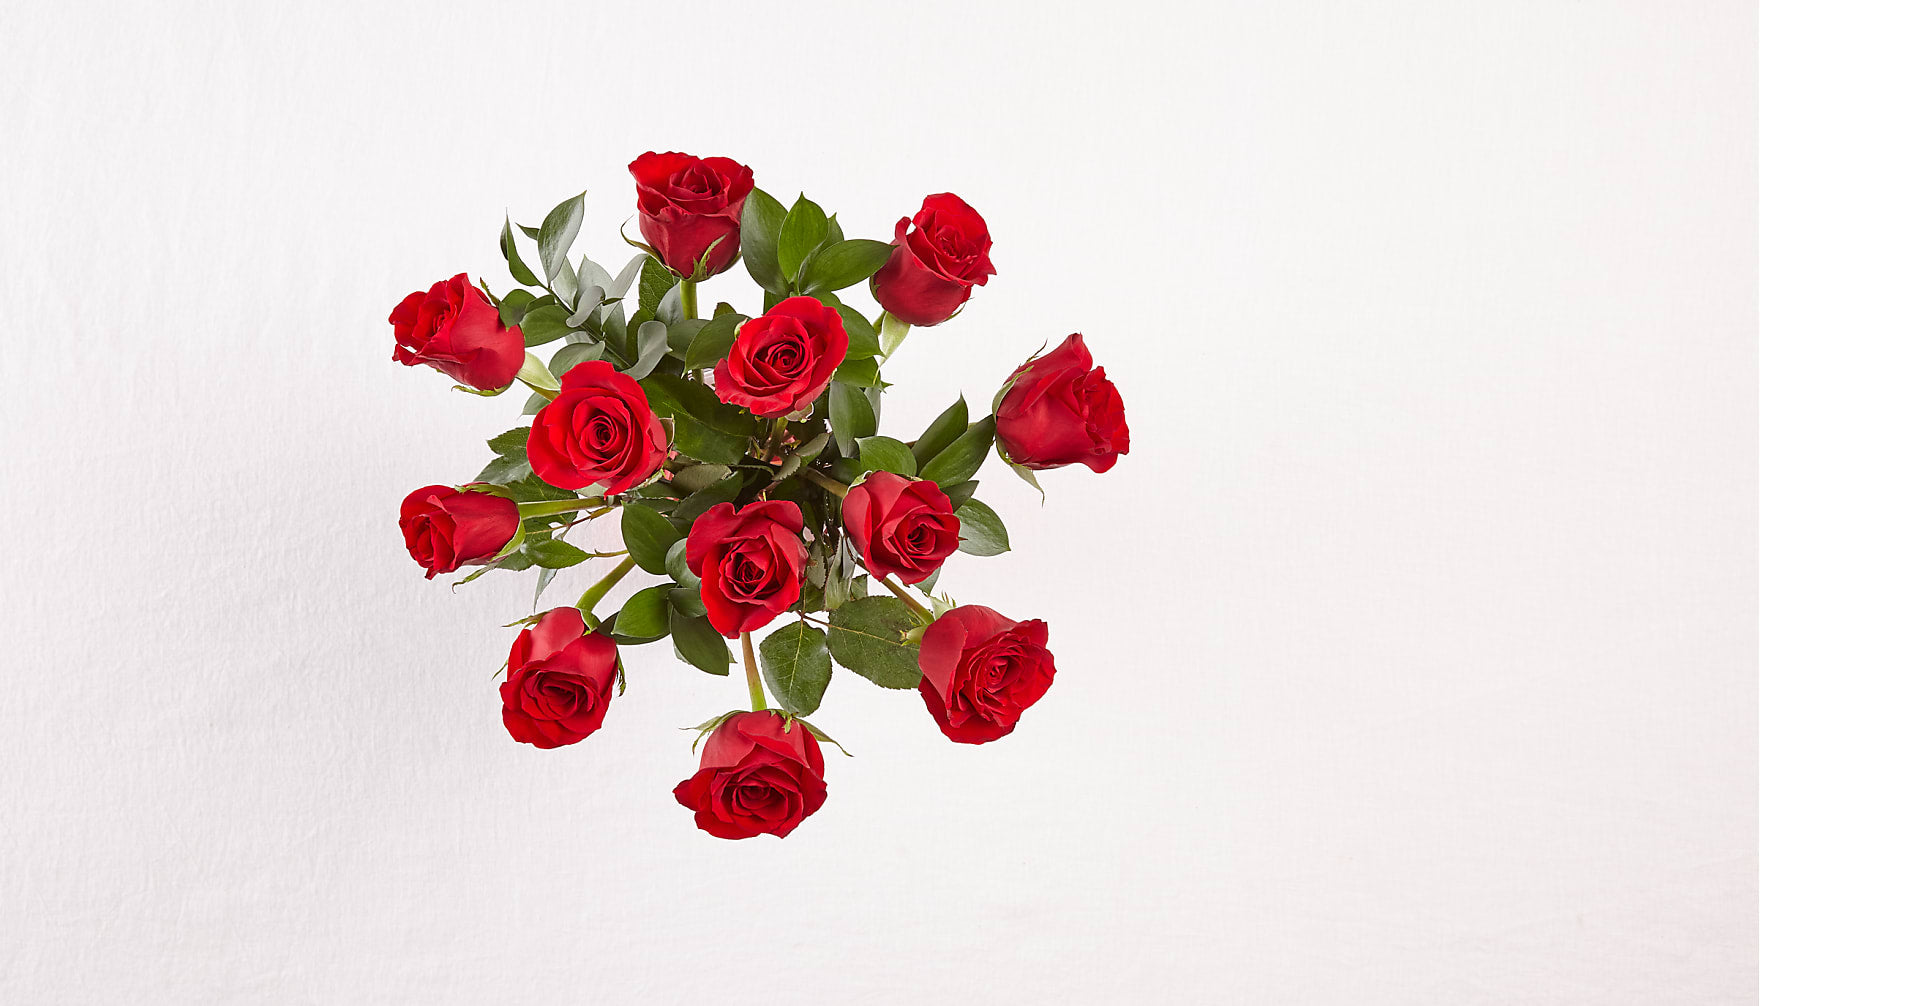 Red Rose Bouquet - Image 2 Of 2